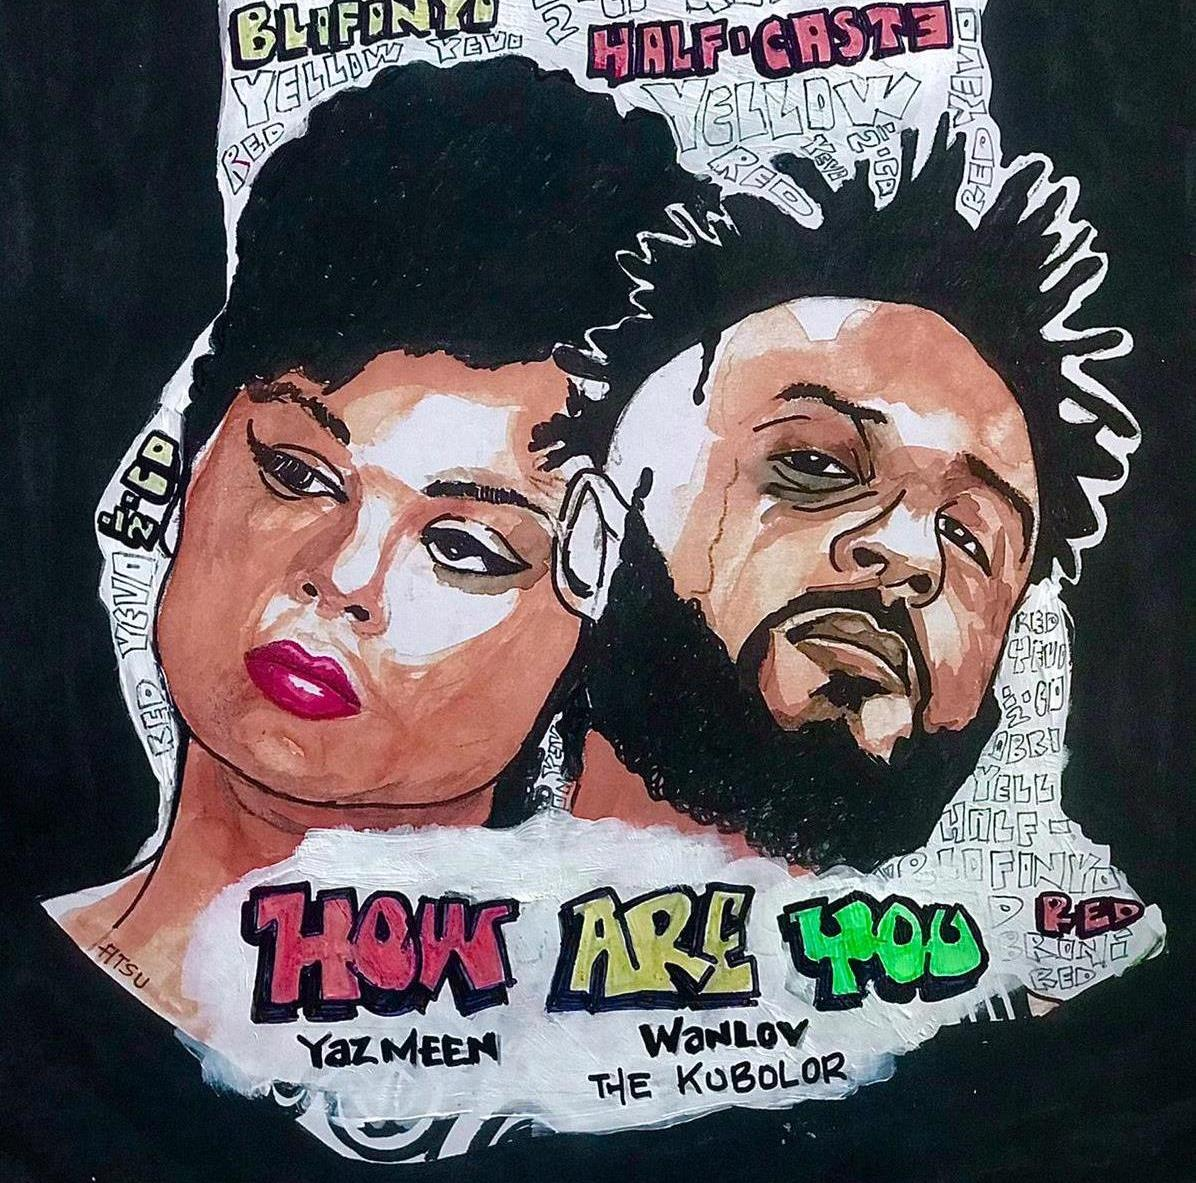 Yaz Meen And Wanlov the Kubolor Sing A Love Ode For Country And Childhood Memories On New Song 'How Are You'